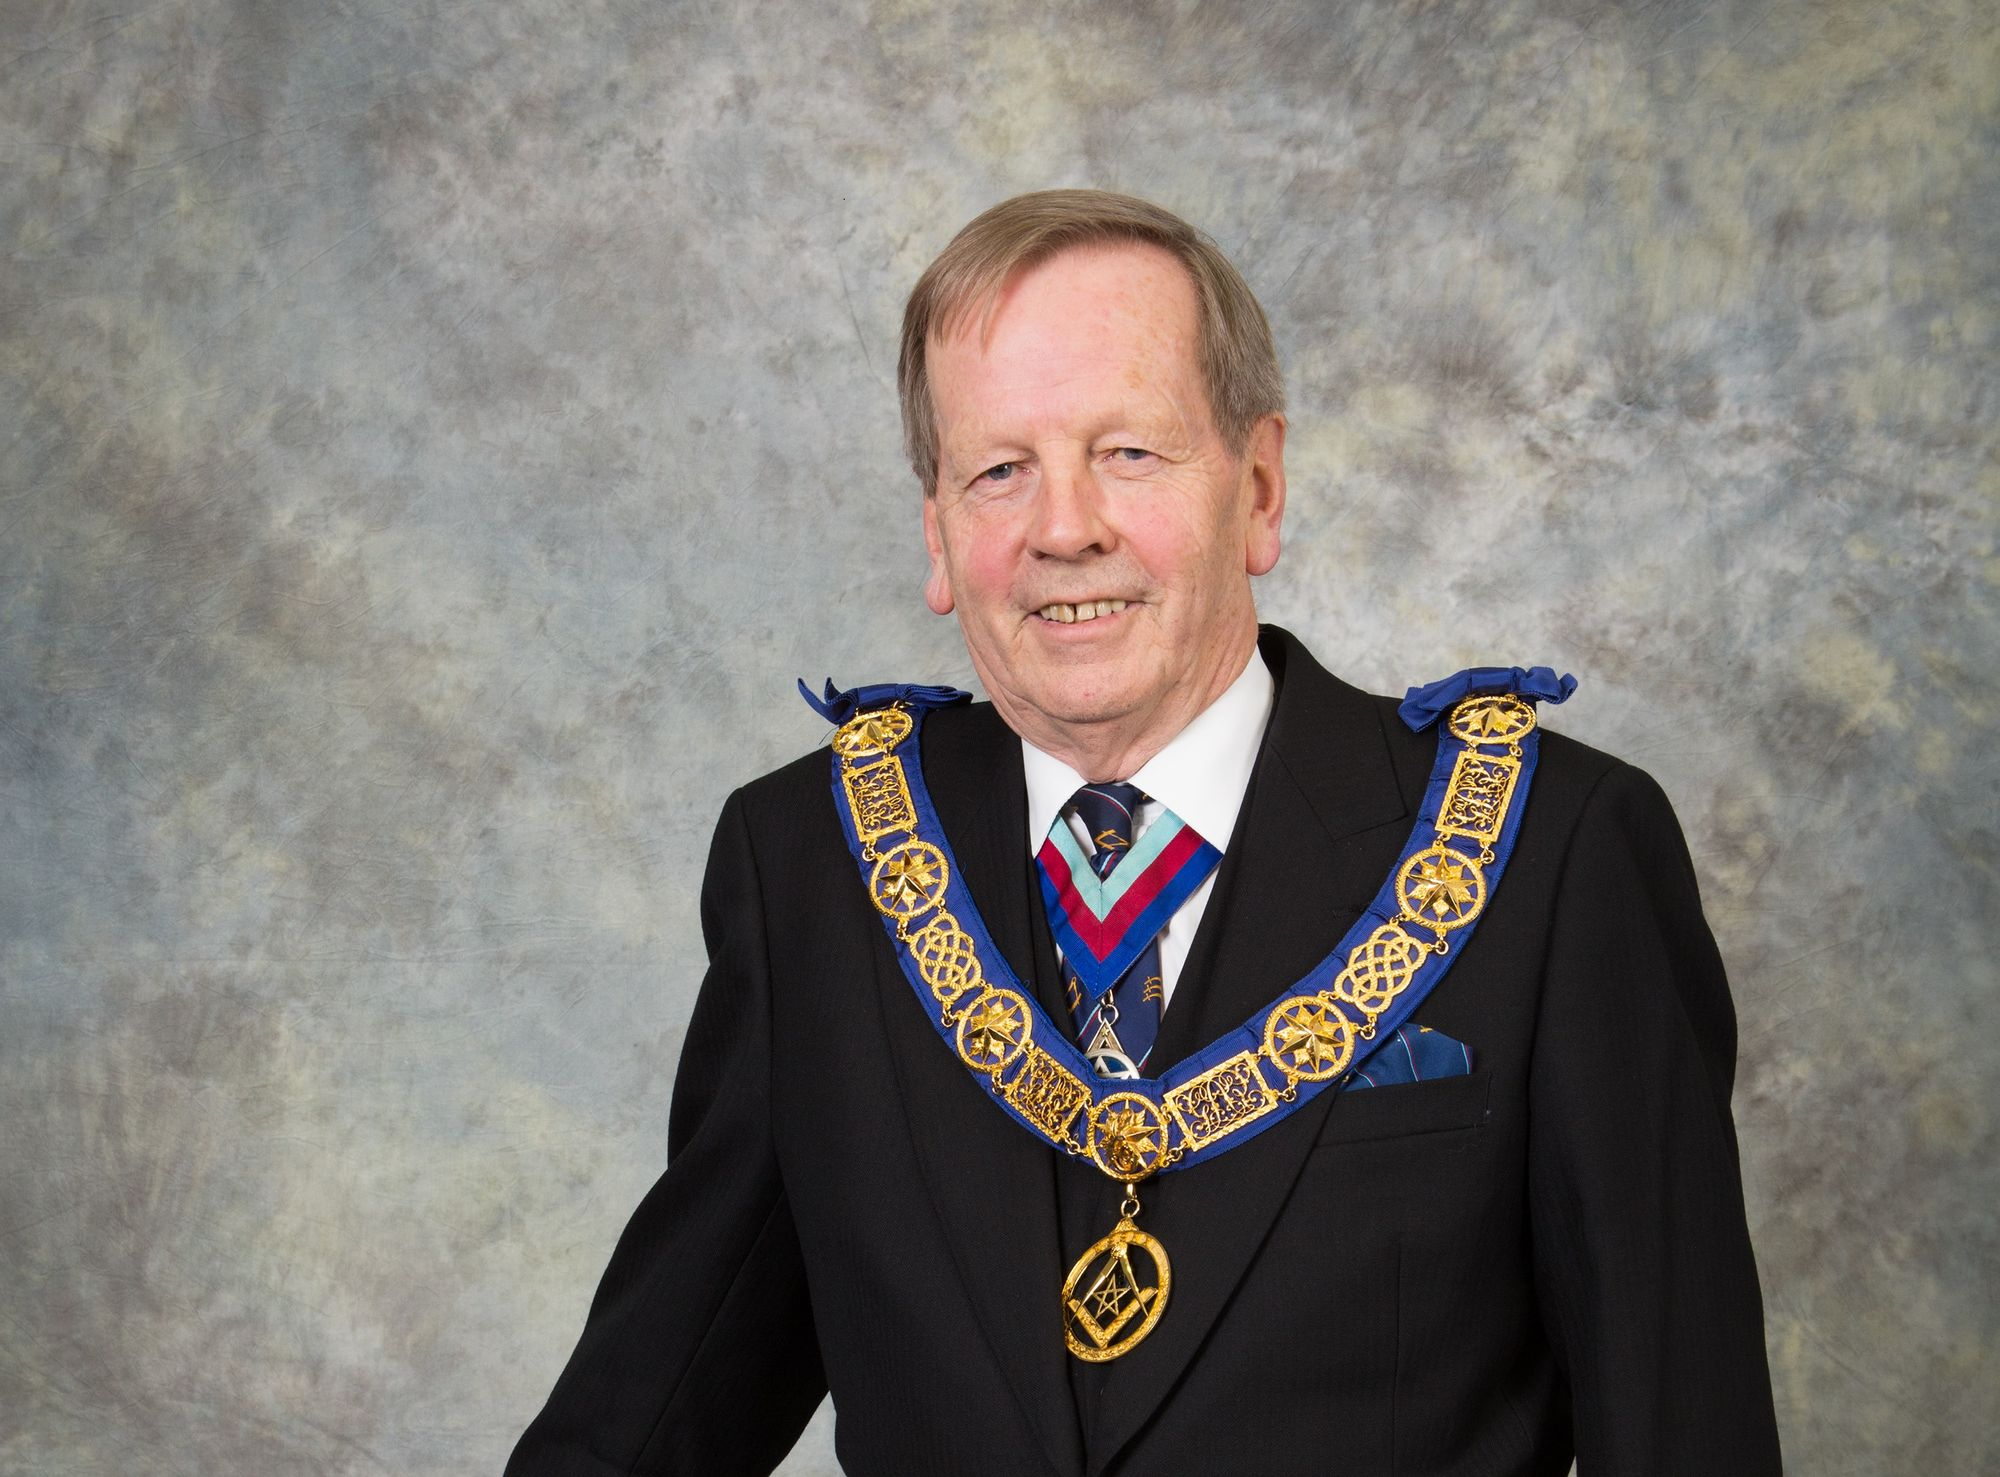 England - Essex Freemasons support local charities hit by Covid-19